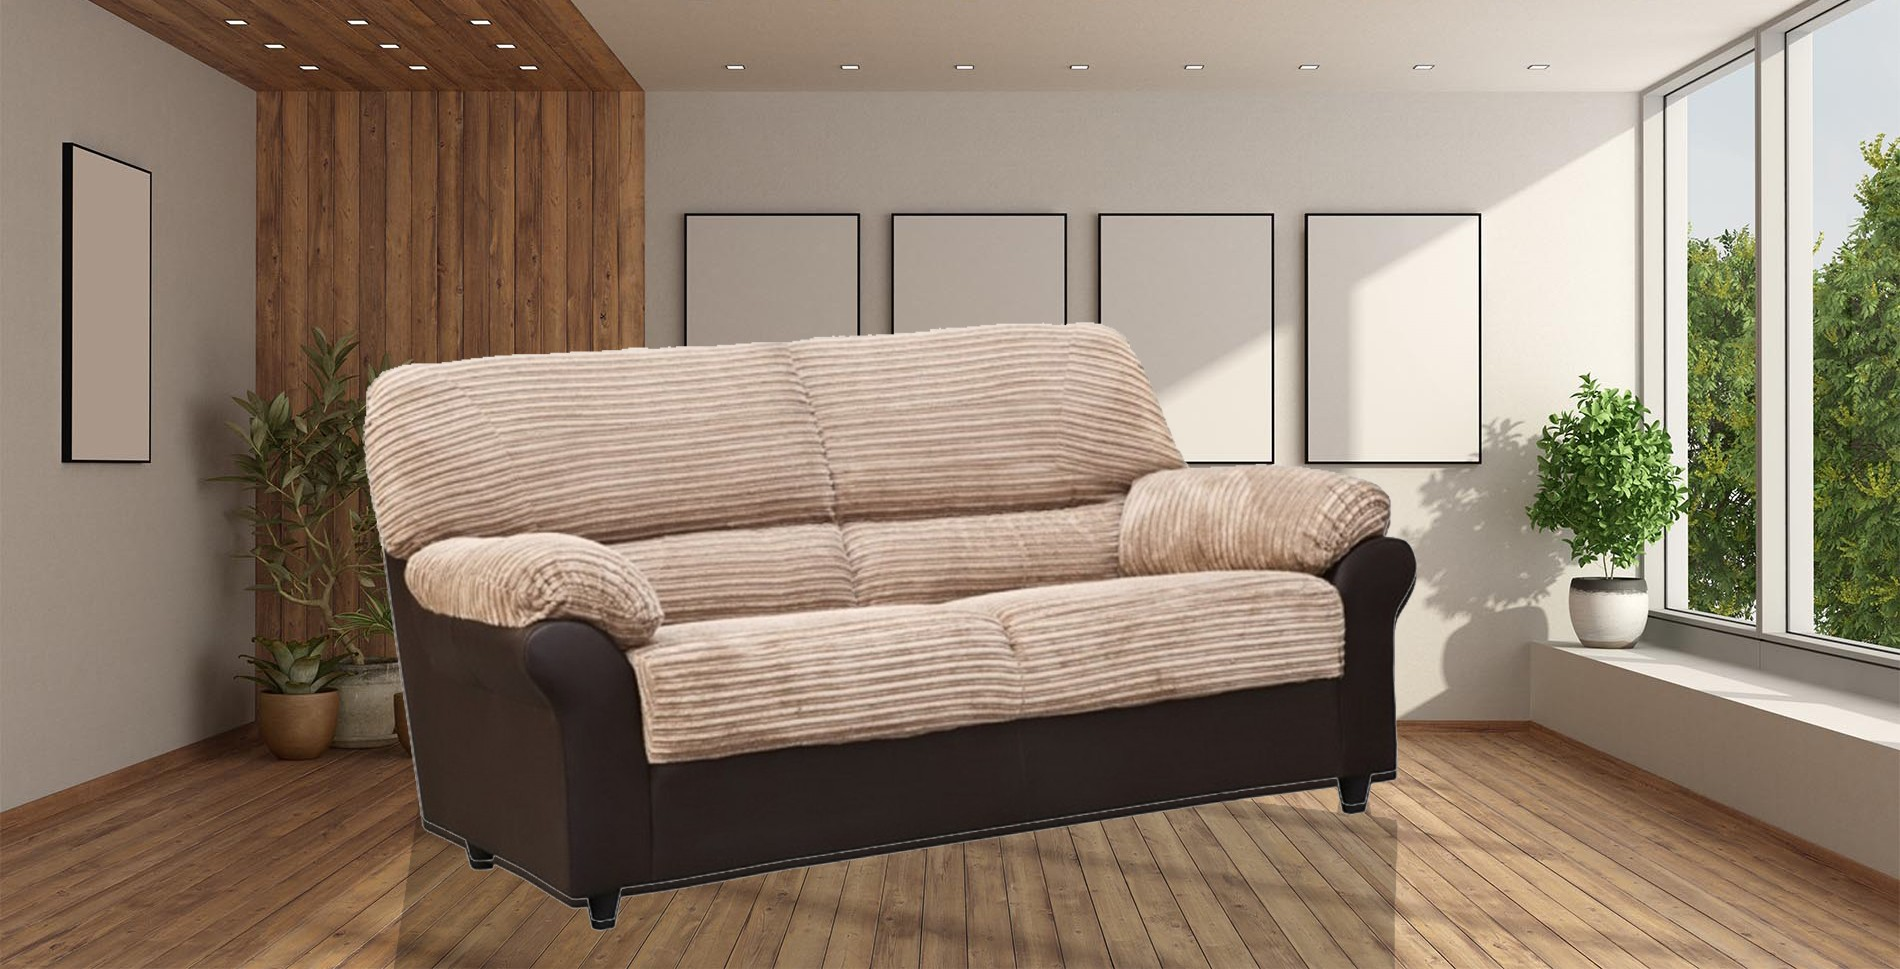 Carrick 3 Seater Brown-Beige